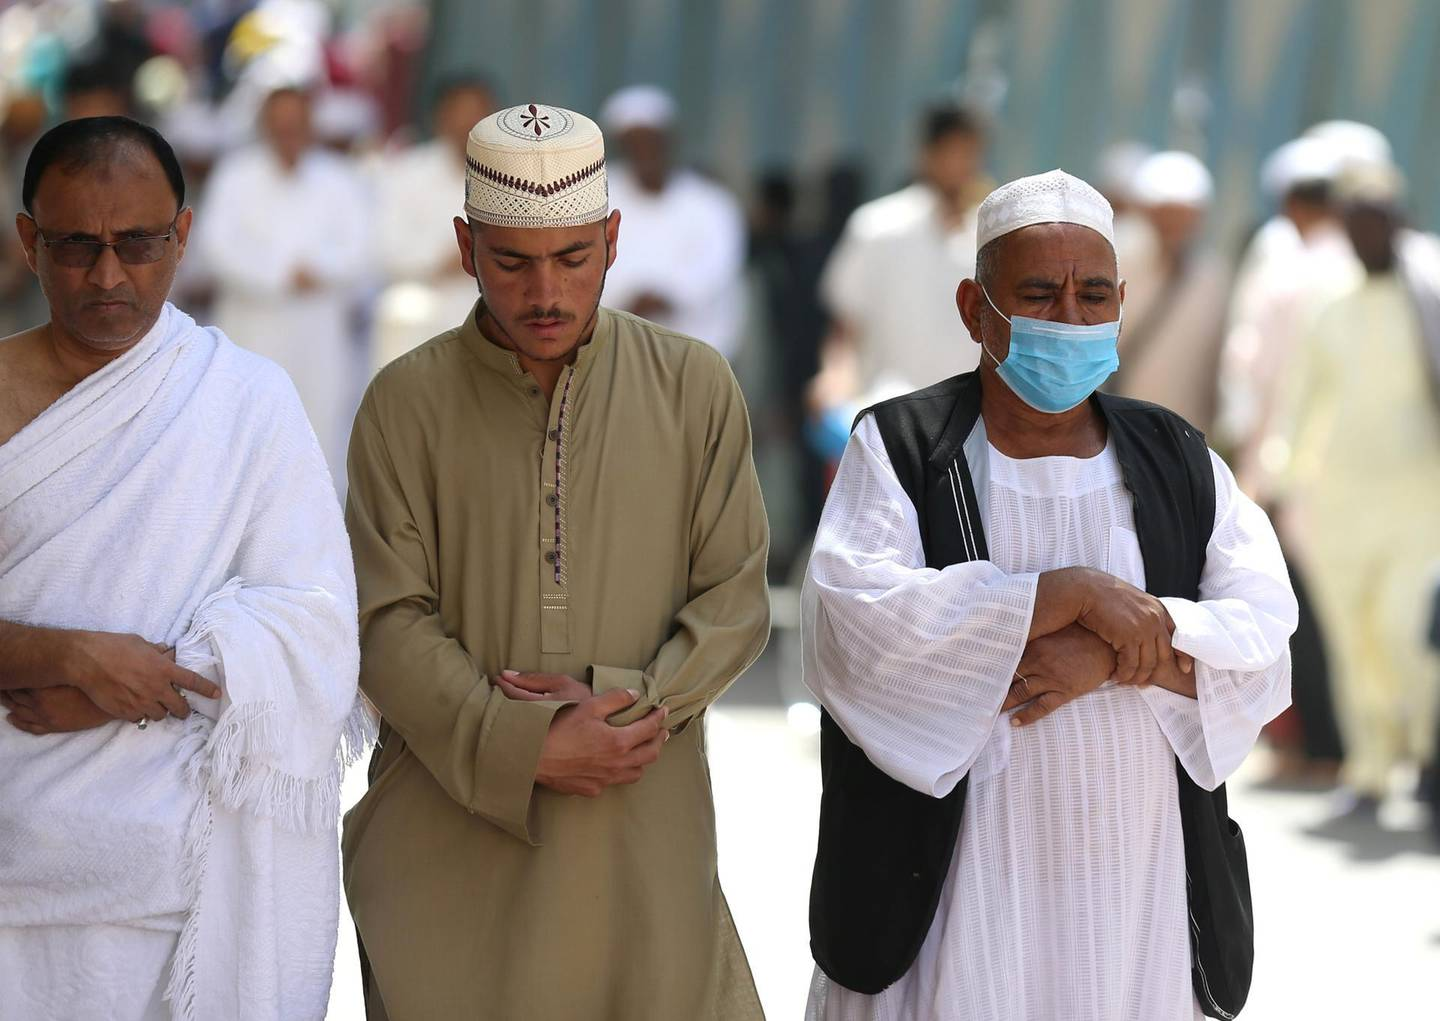 A muslim pilgrim wears a protective face mask to prevent contracting coronavirus, as he prays at the Grand mosque in the holy city of Mecca, Saudi Arabia February 27, 2020. REUTERS/Ganoo Essa